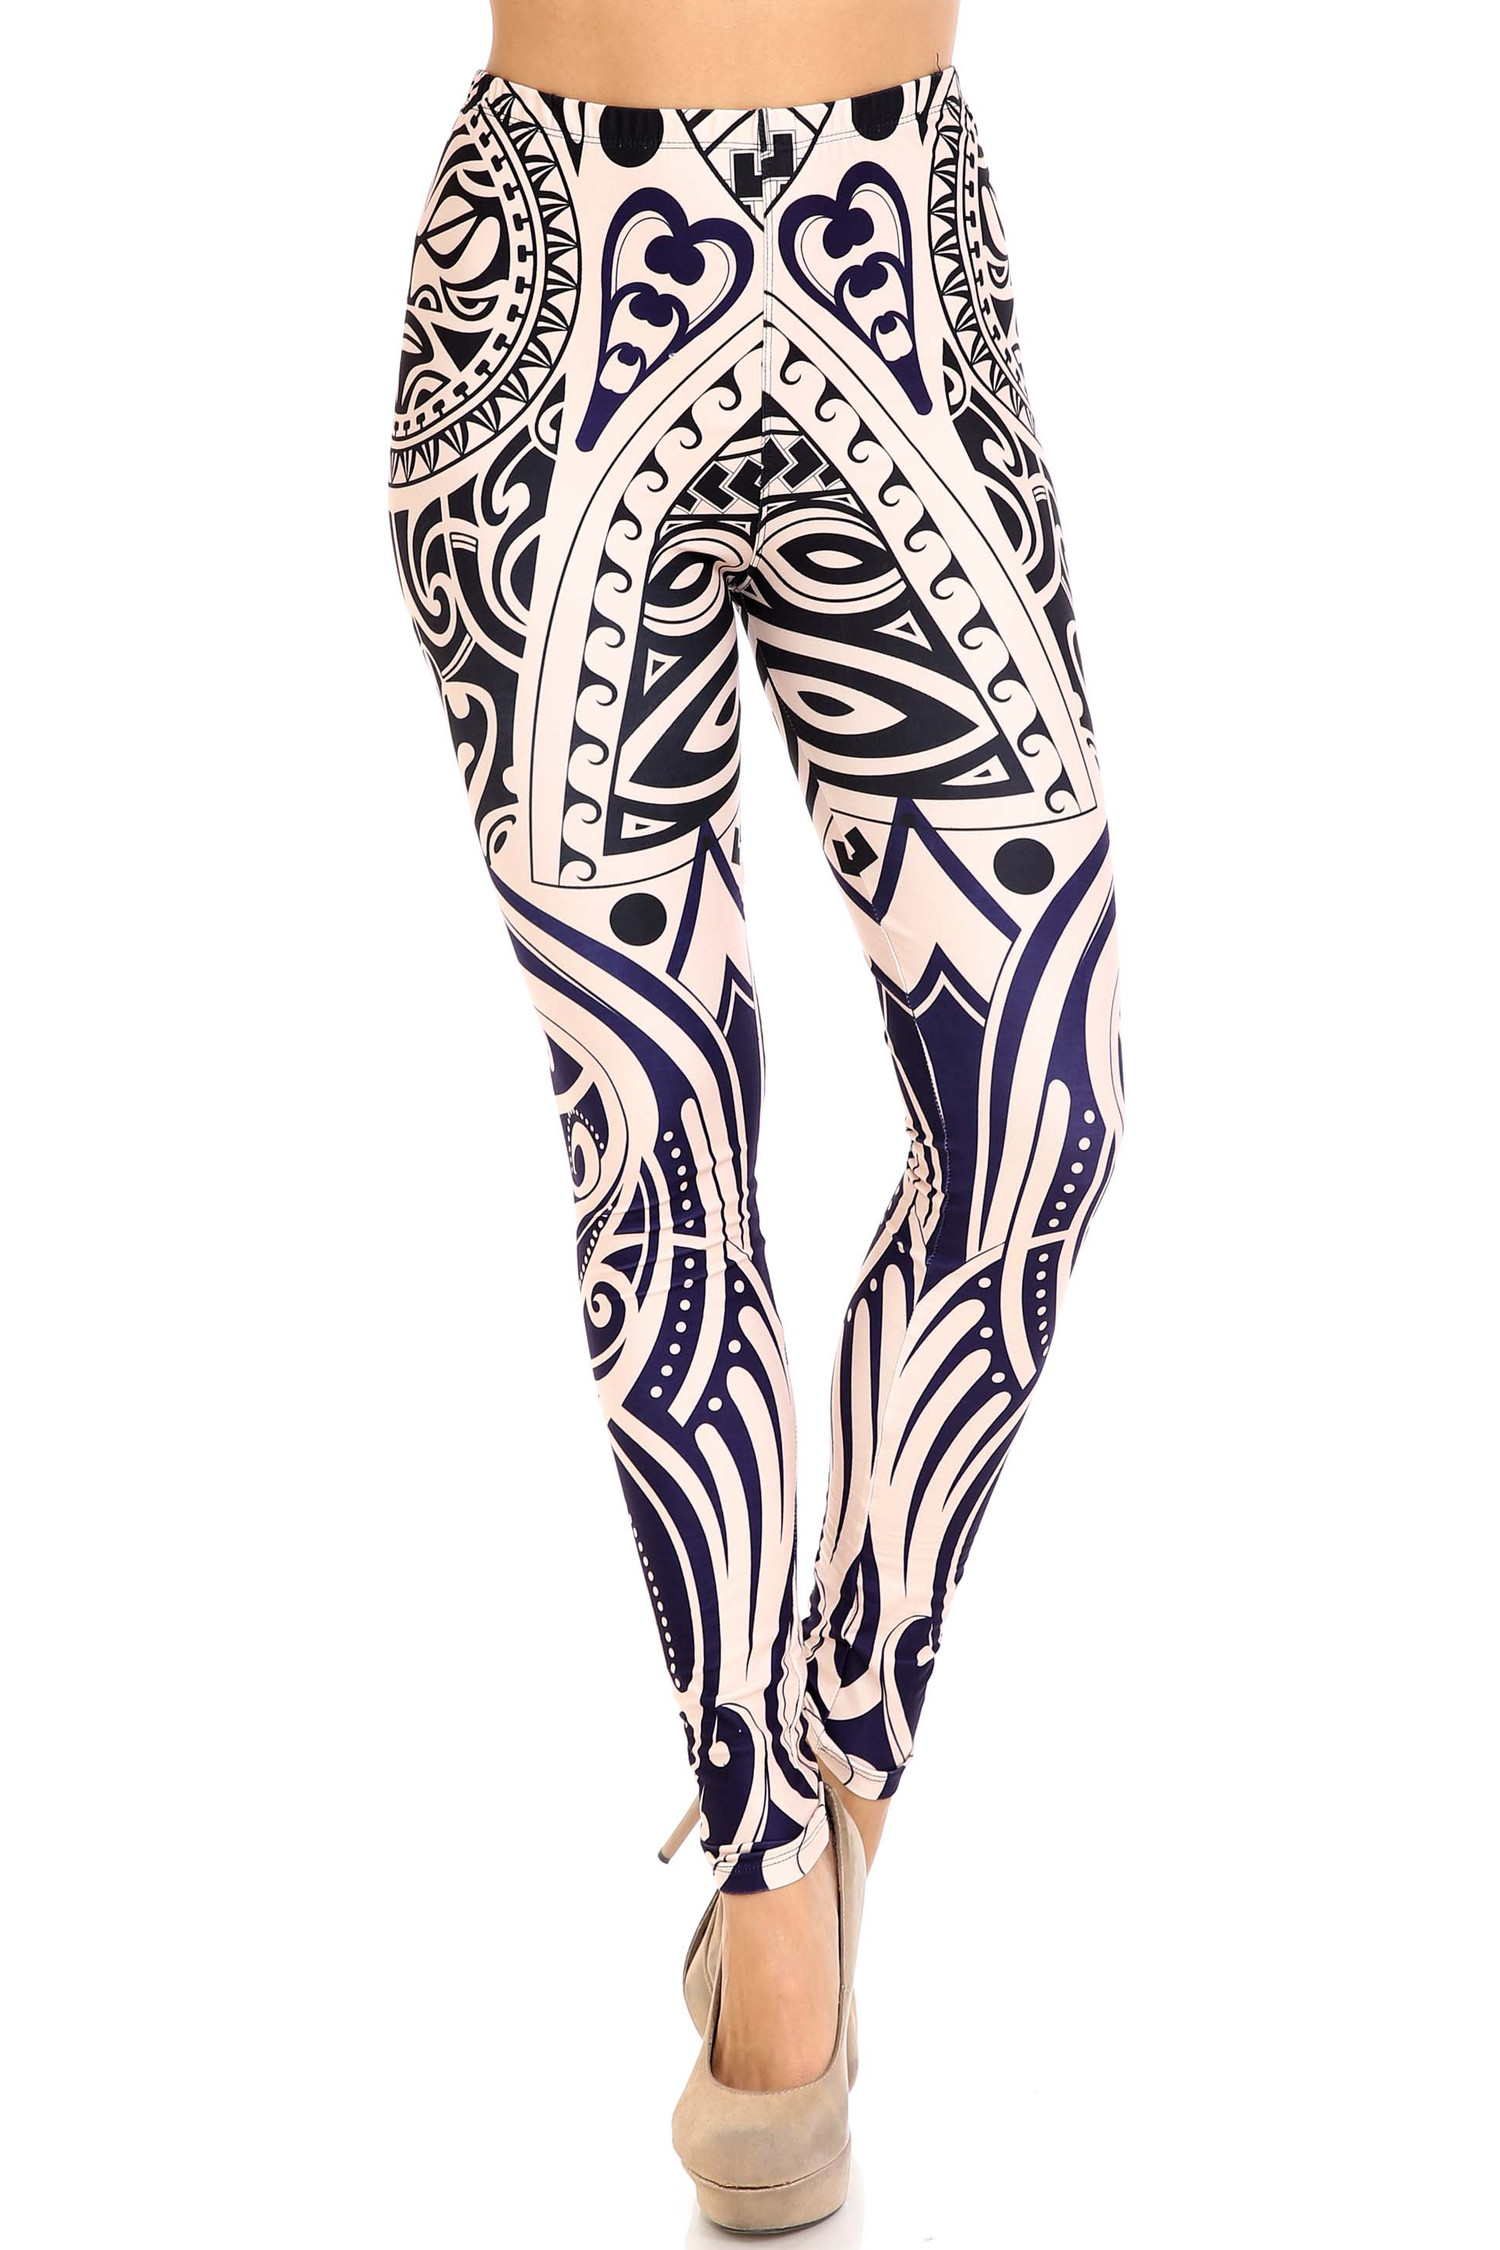 Front of mid rise Creamy Soft Valhalla Plus Size Leggings - USA Fashion™ with a full length hem and elastic waist.